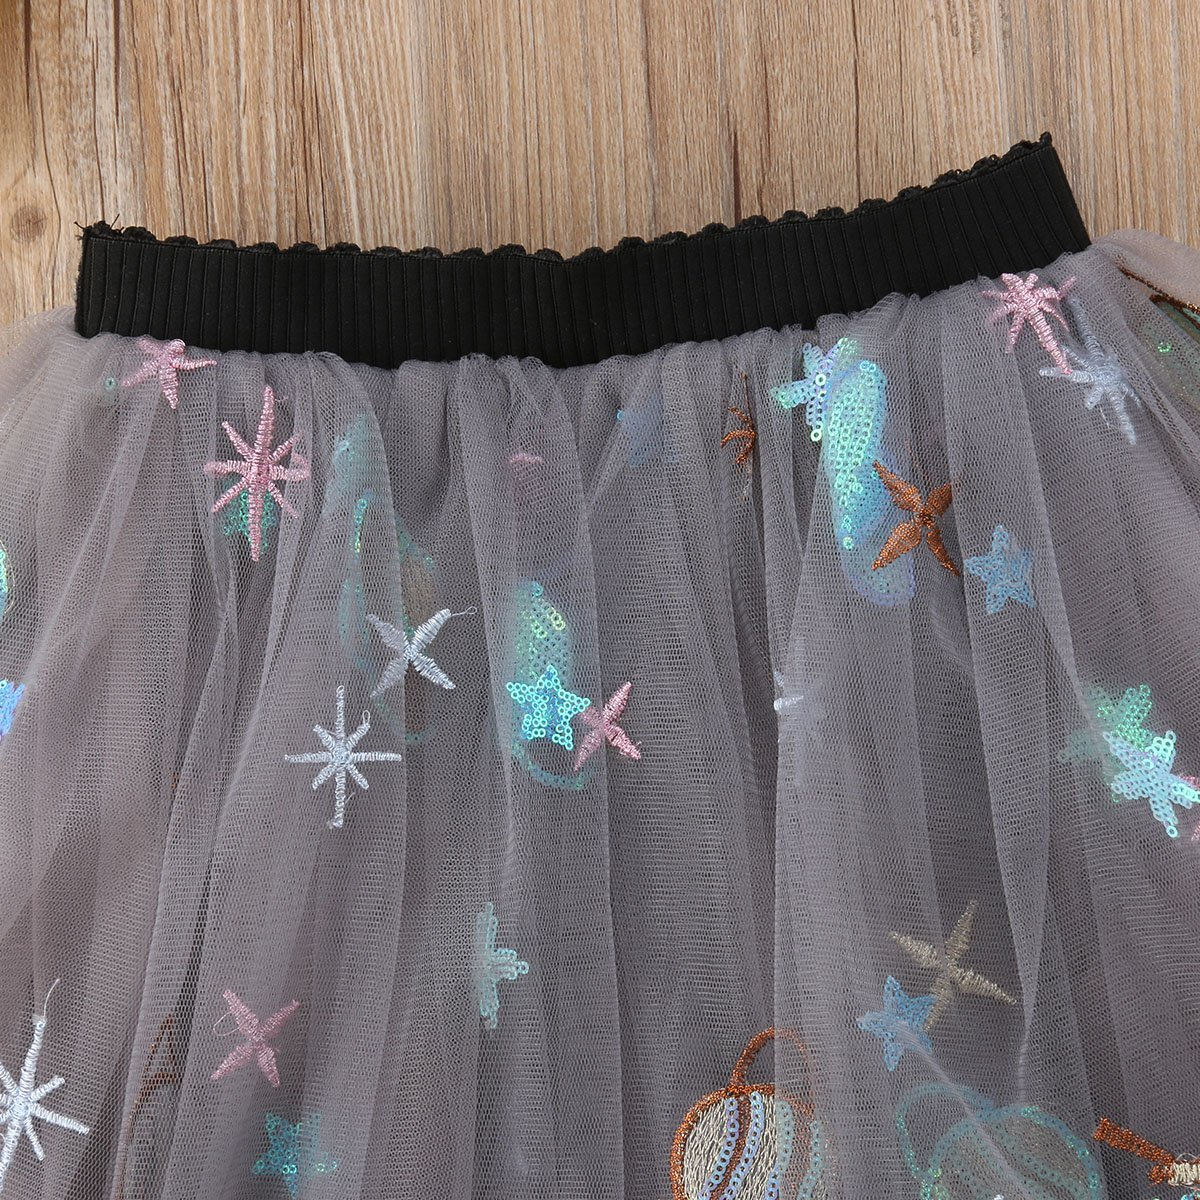 remeo suit Baby Girl Embroidered Glitter Tulle Skirt Mini Dress with Sequin Decor